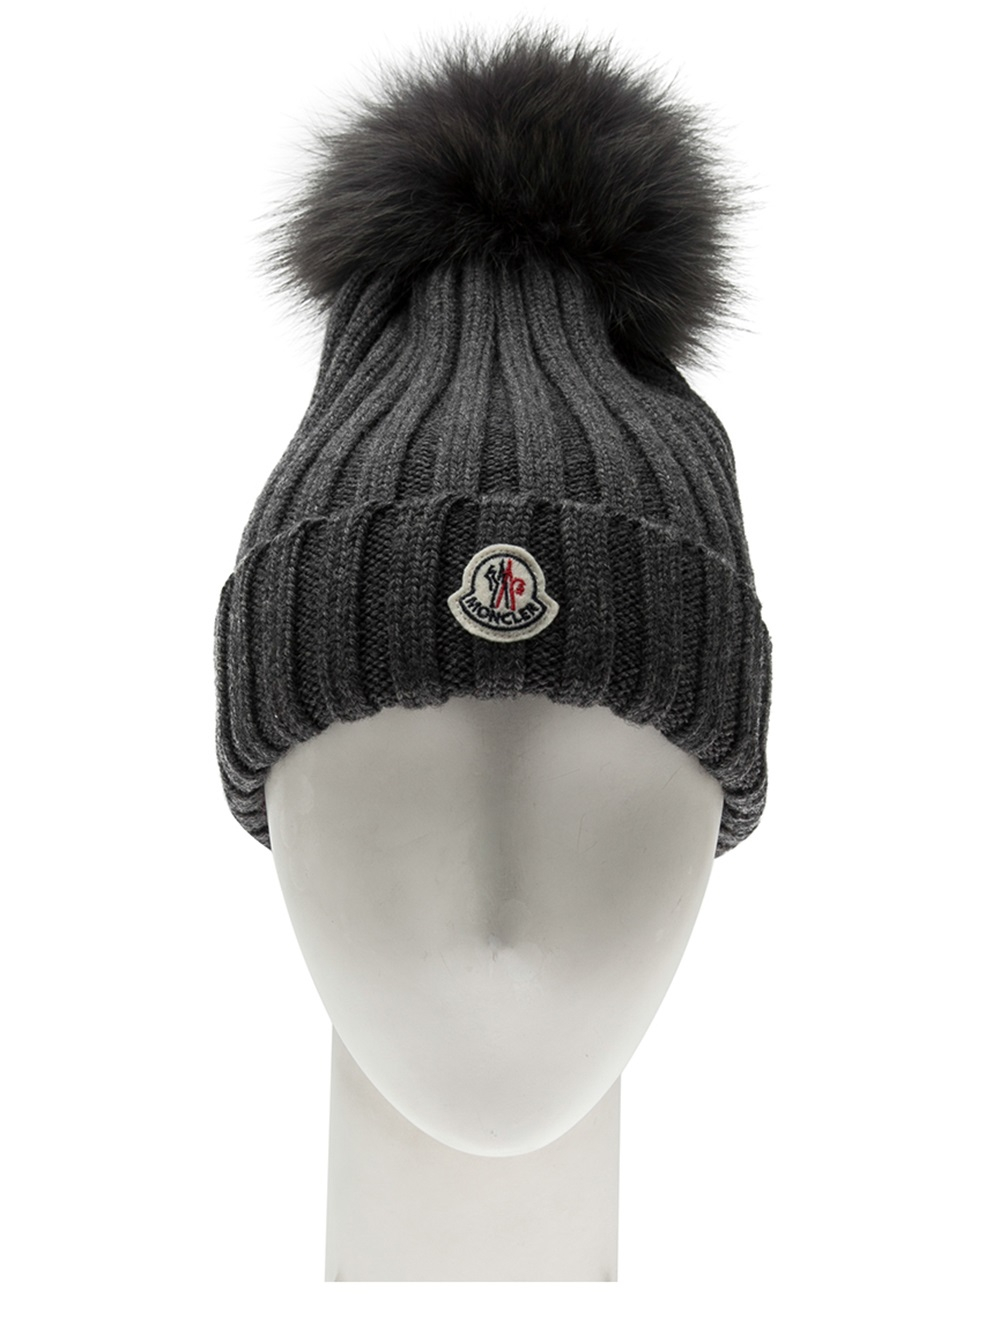 287e28a63 Lyst - Moncler Cap with Fur Pom Pom in Gray